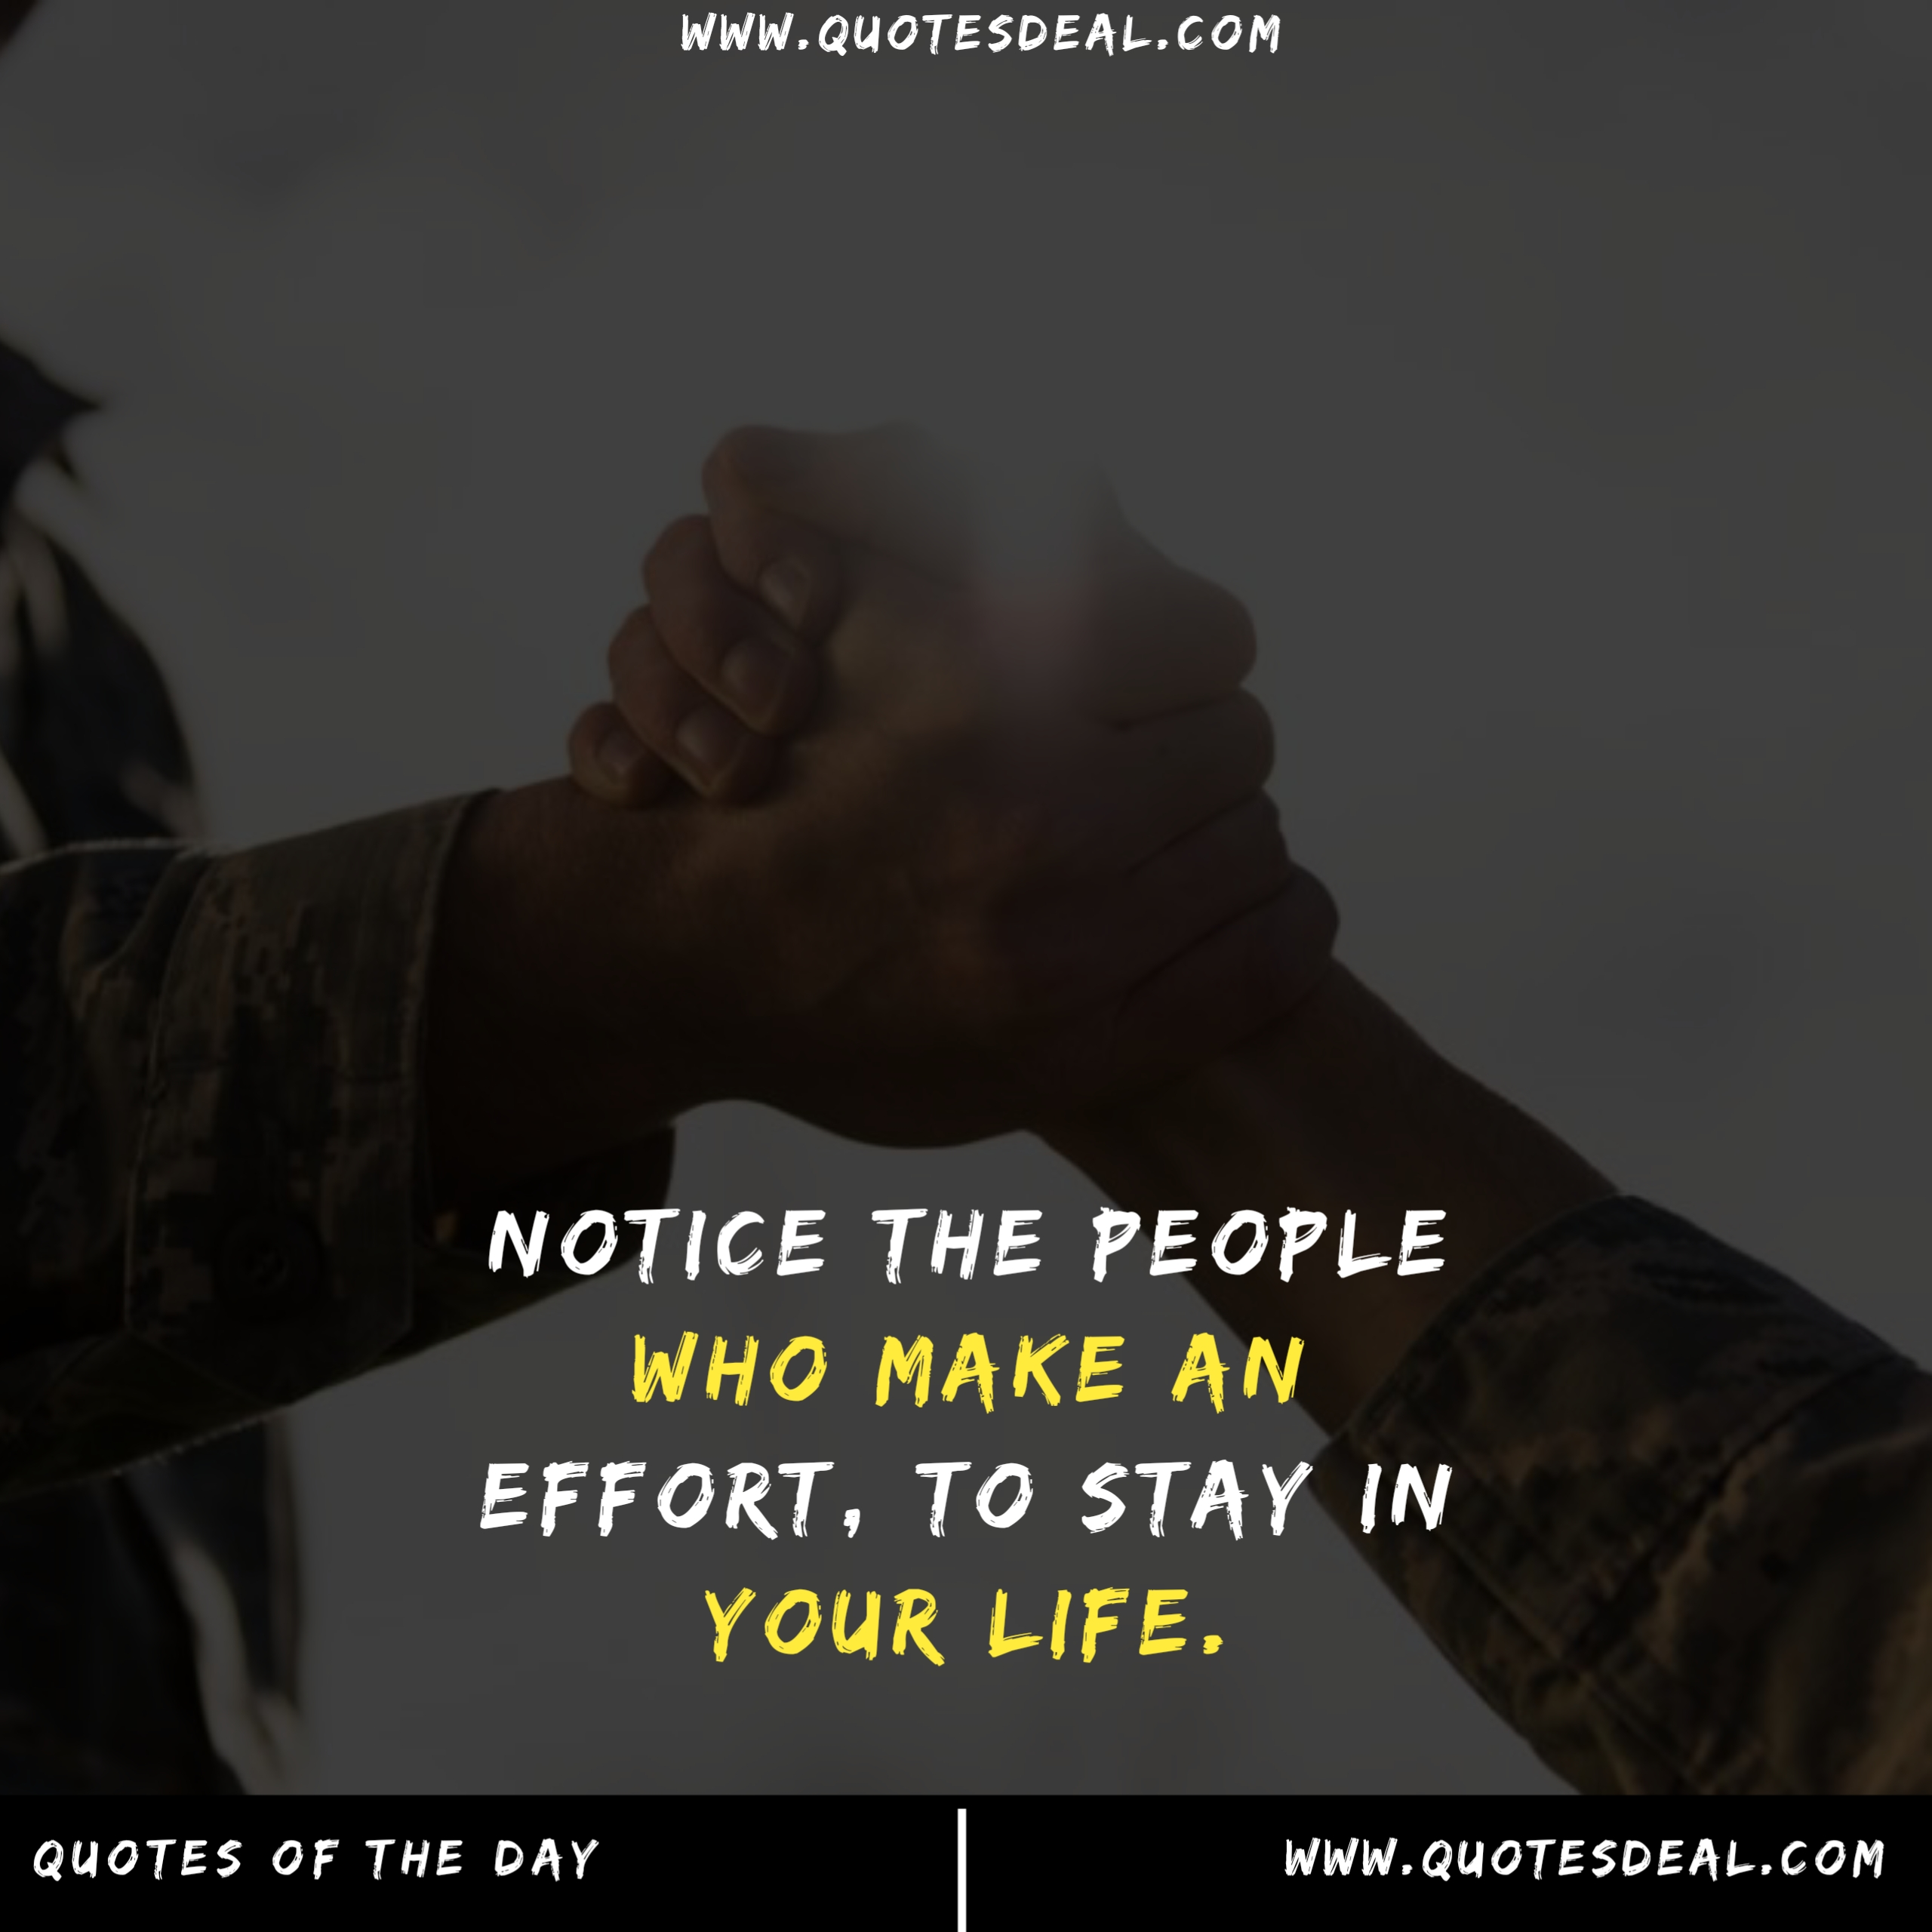 Notice the people